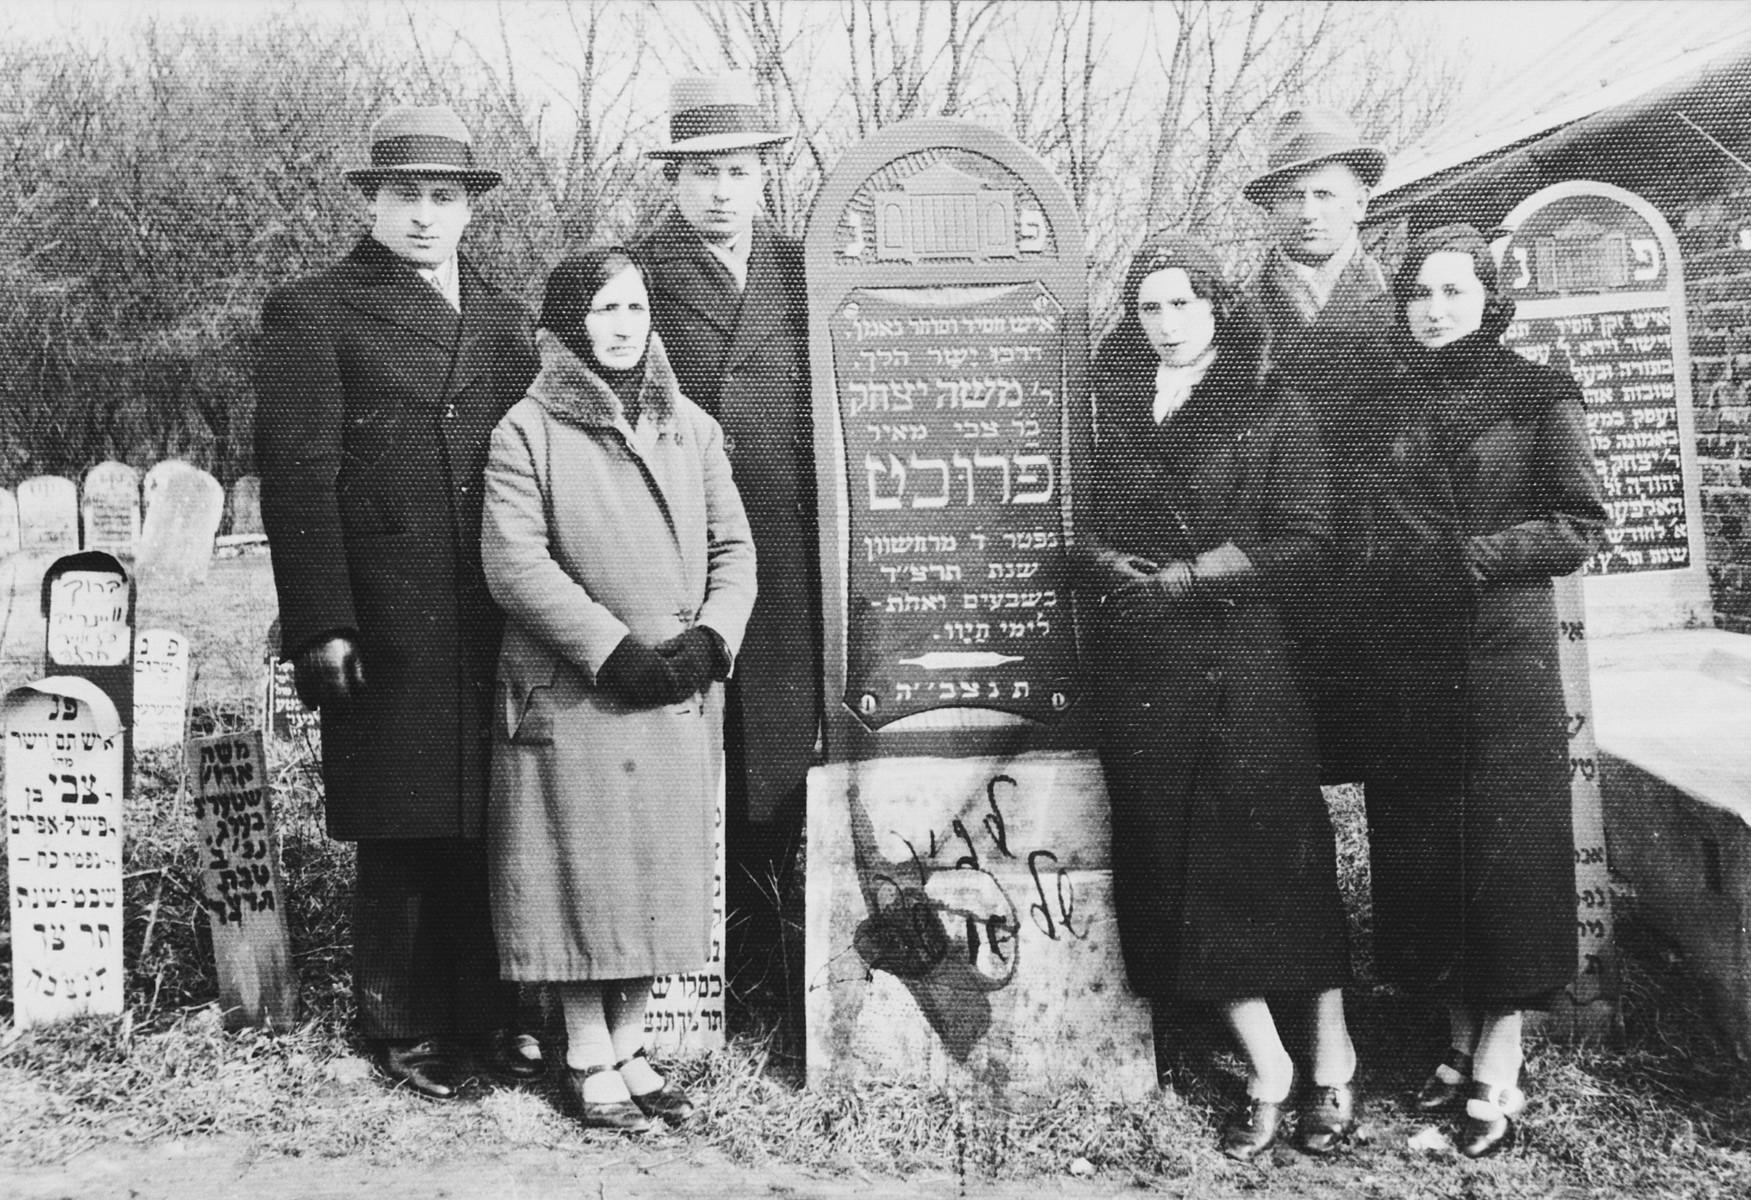 A Polish-Jewish family poses by the grave of its father, Moshe Itzchak Frucht.  Pictured from left to right are Szyja Frucht, Malka Frucht, Avigdor Frucht, Bela and Issac Perec, and Frieda Frucht.